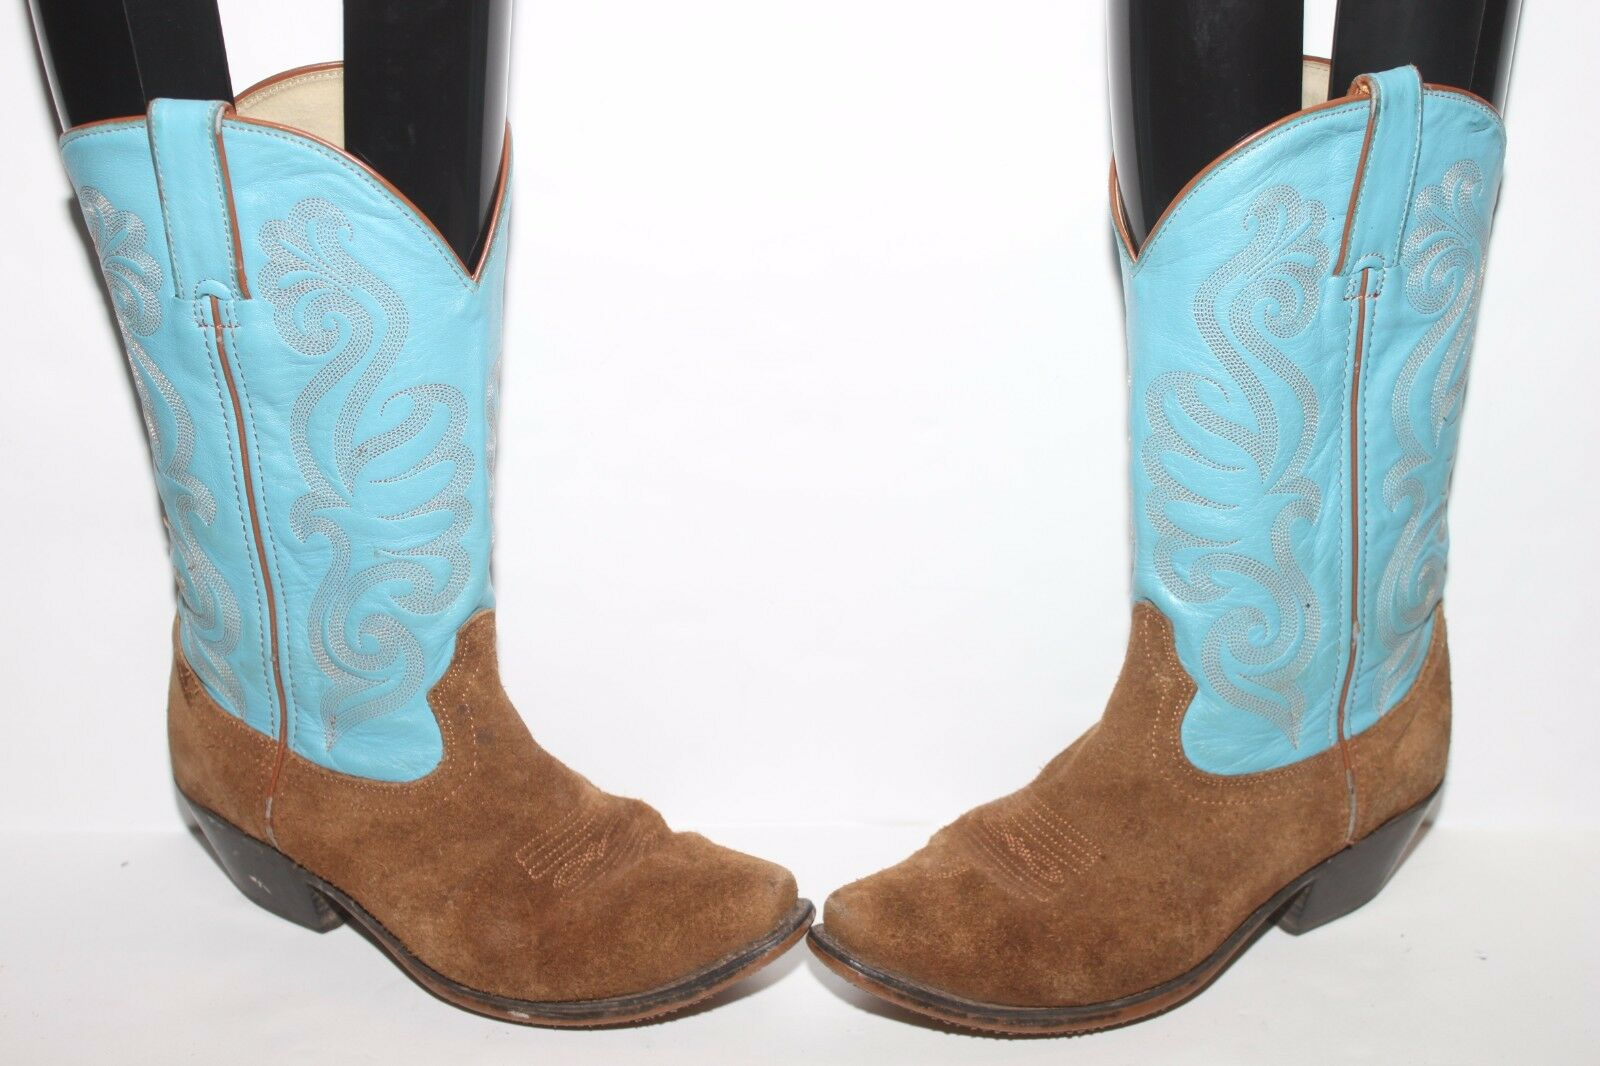 Durango RD5102 TURQUOISE blueE & TAN BROWN Suede Western Cowboy Boots size 6.5 M